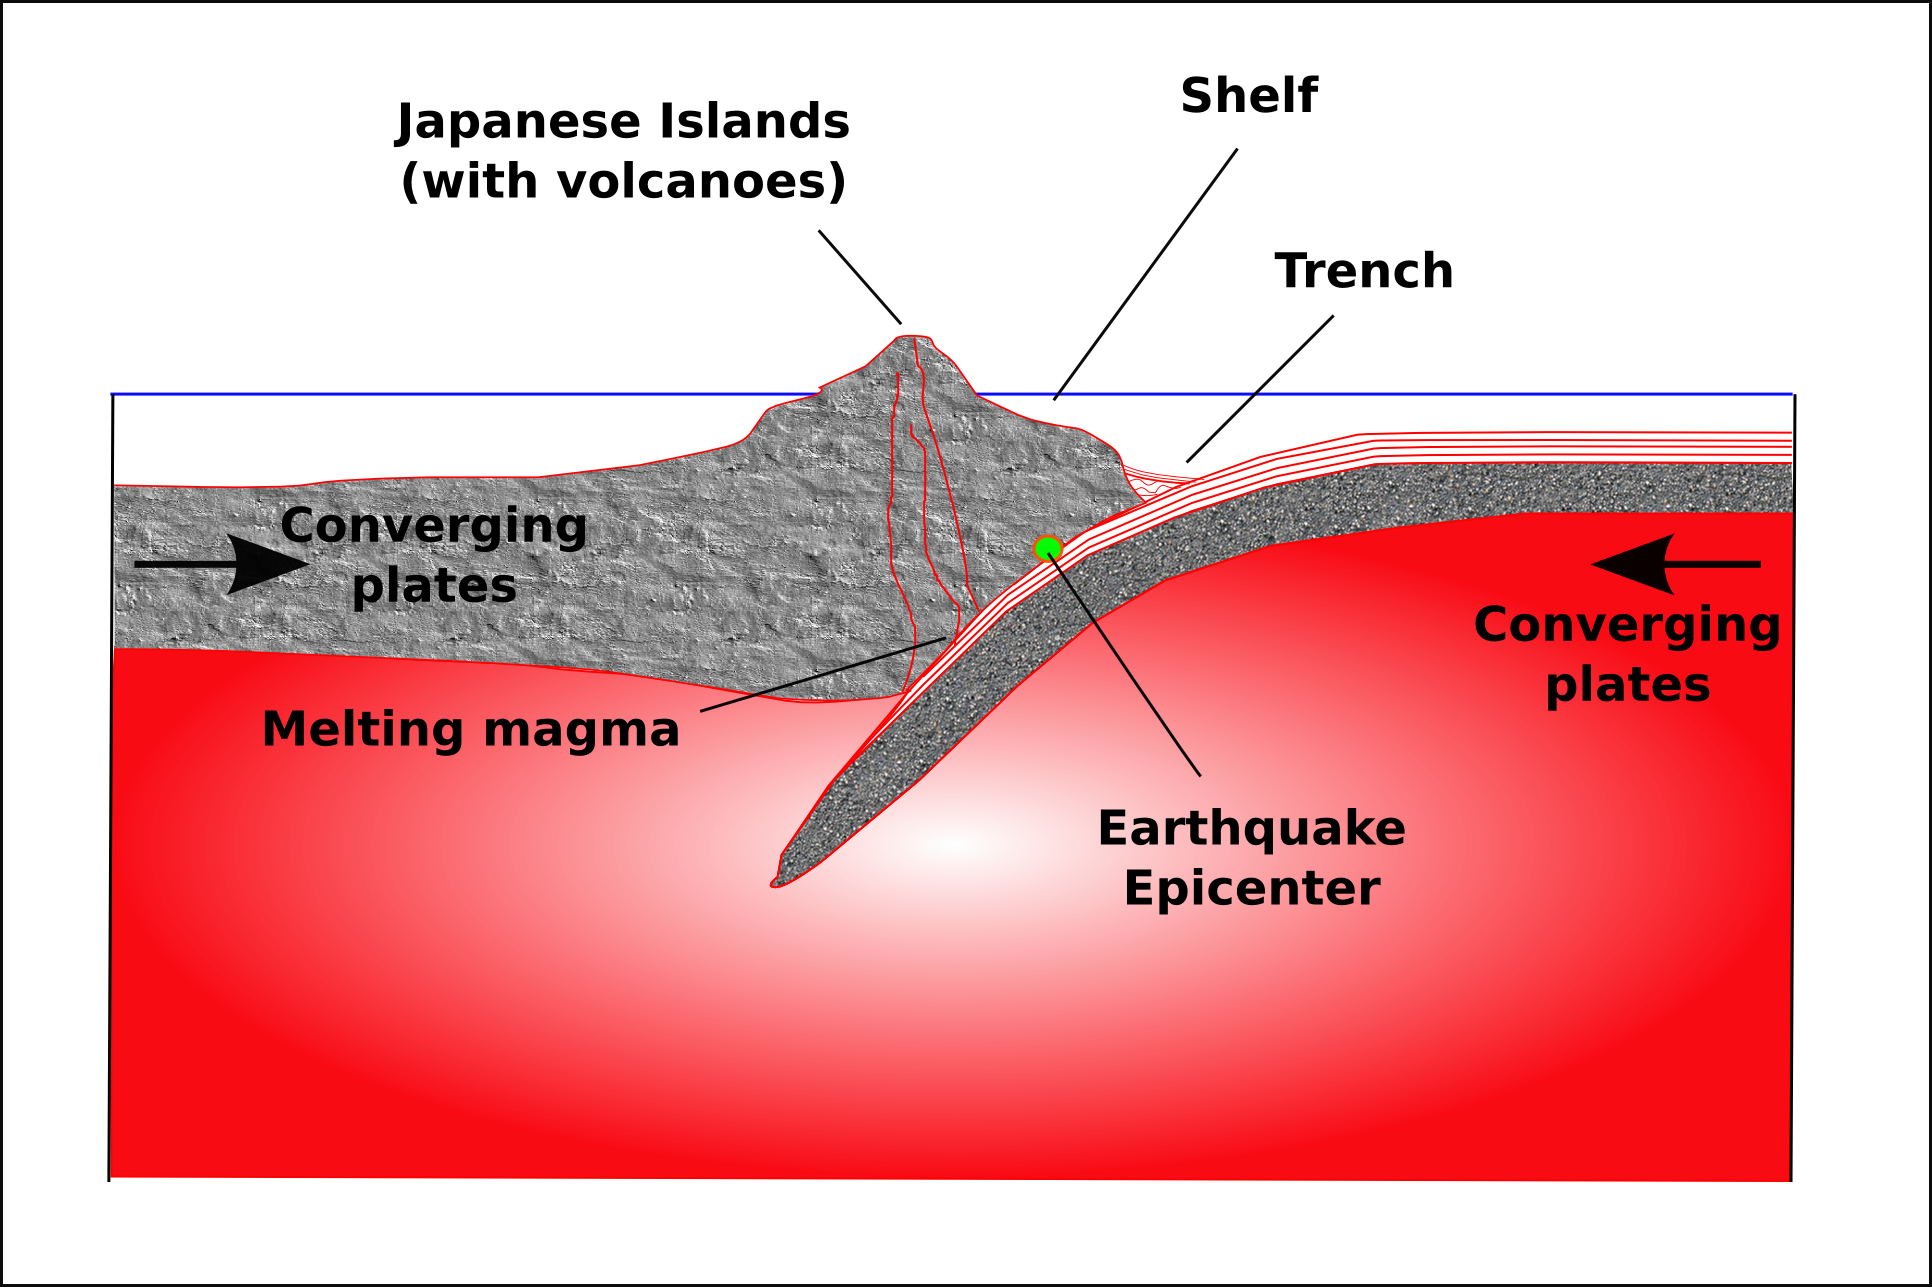 http://montessorimuddle.org/2011/03/11/plate-tectonics-and-the-earthquake-in-japan/